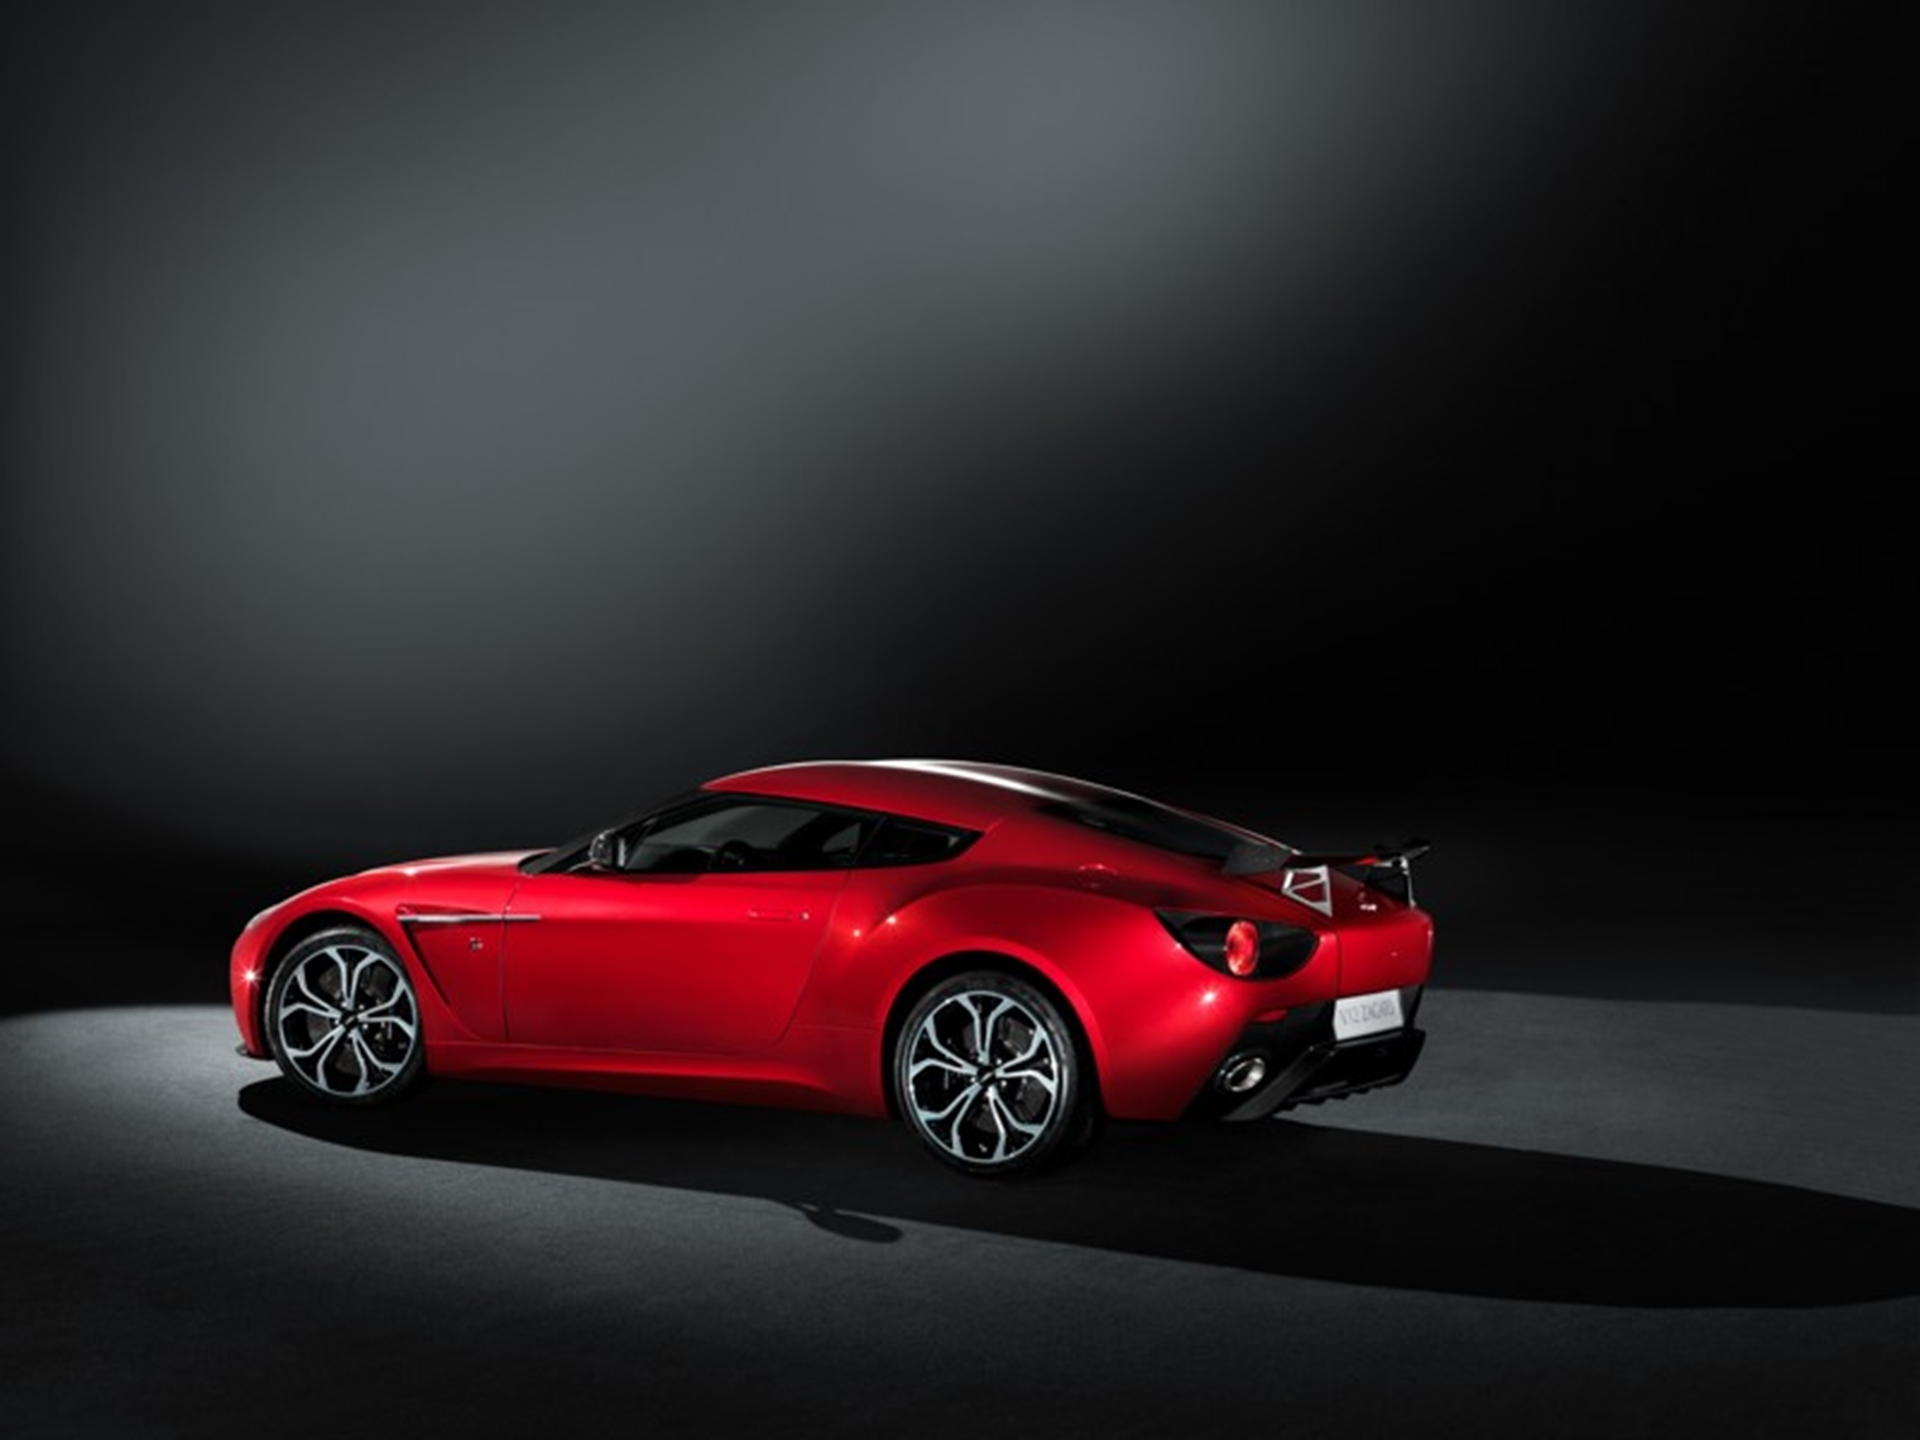 The New Aston Martin V12 Zagato